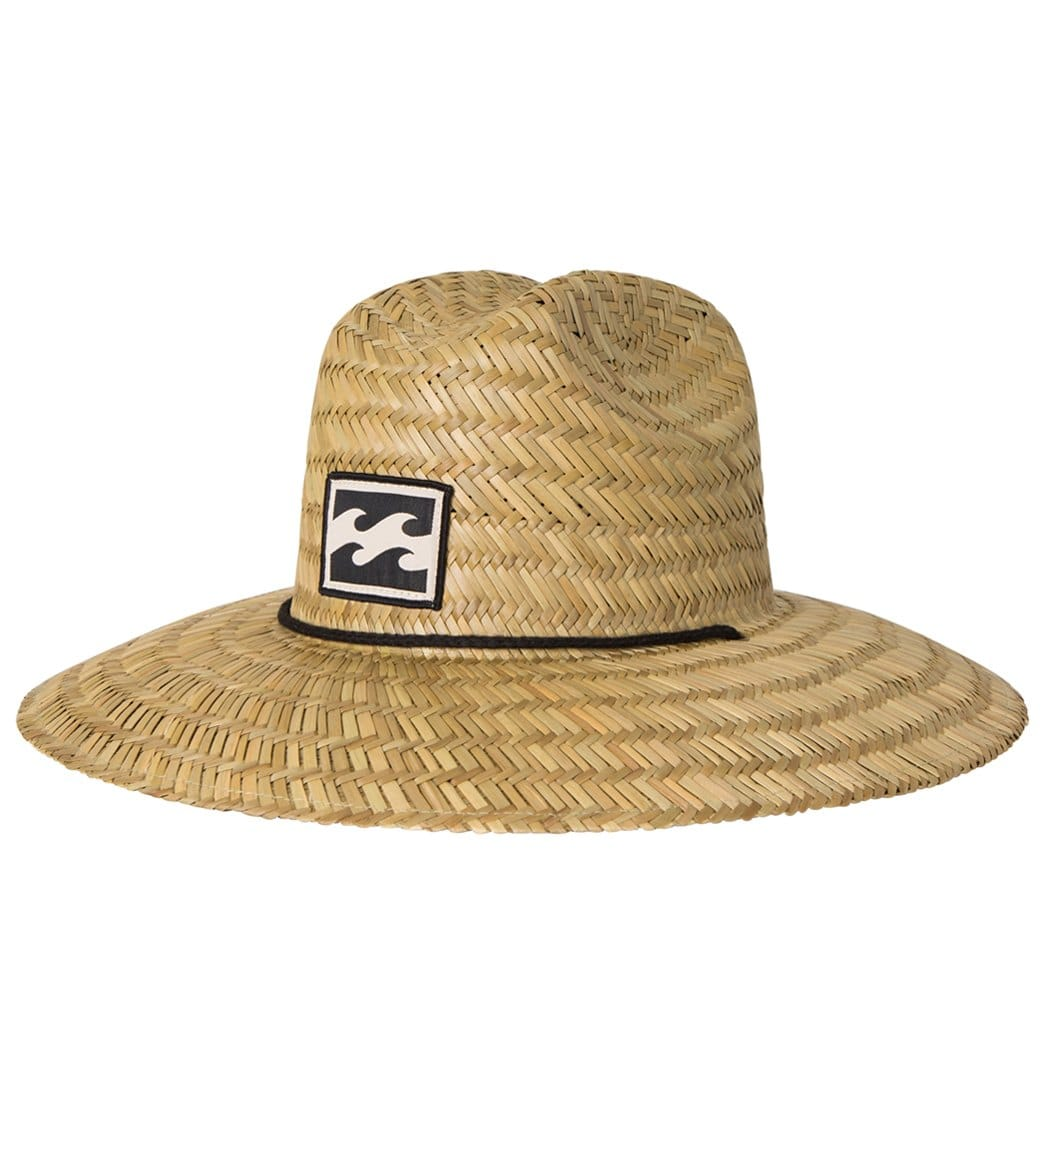 Billabong Men s Tides Lifeguard Hat at SwimOutlet.com a1c9d09158f